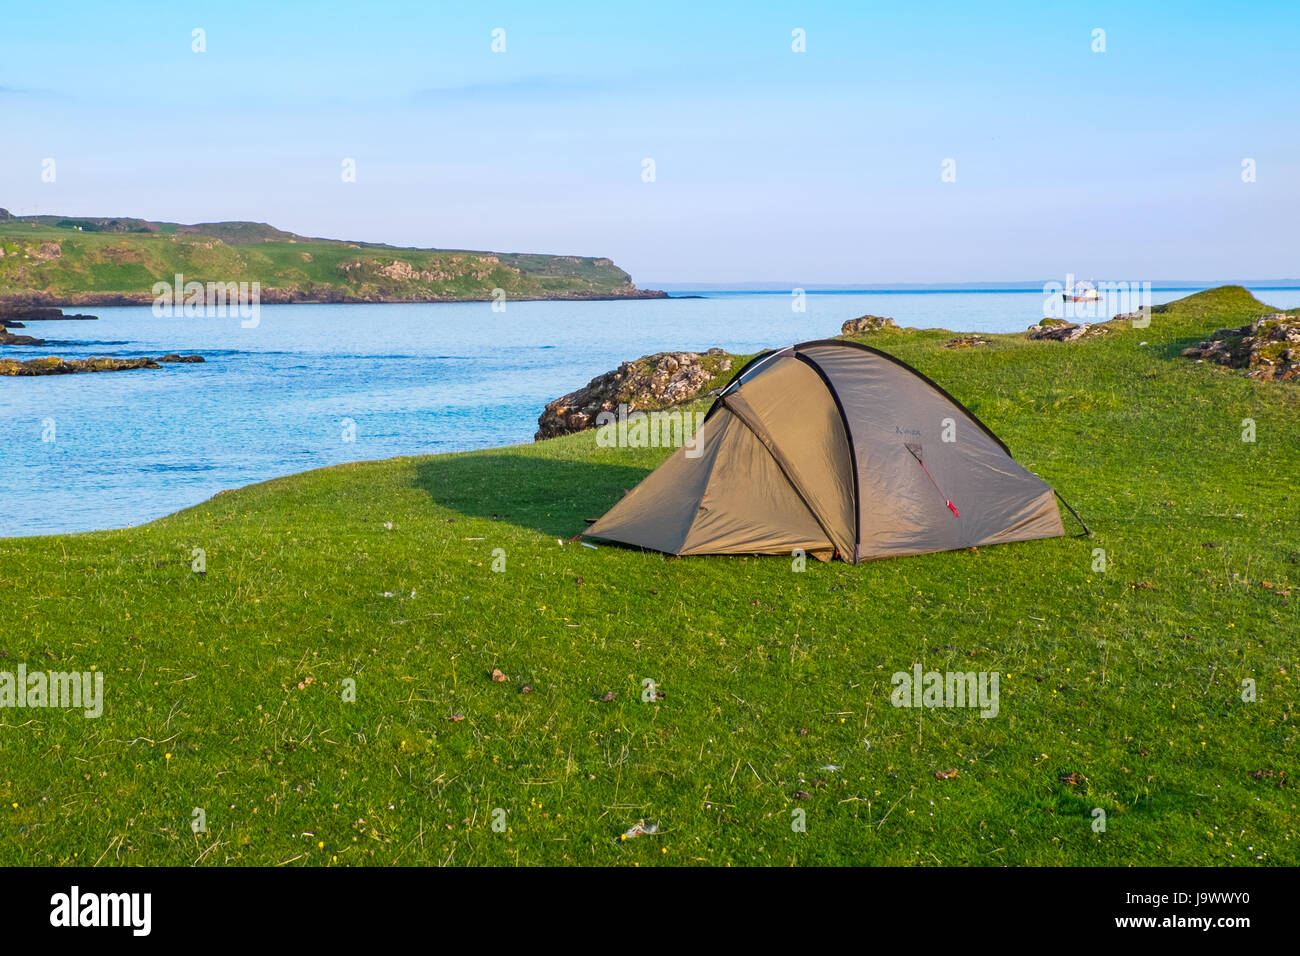 A tent at Langamull Bay on the north coast of Mull in the Scottish Hebrides - Stock Image